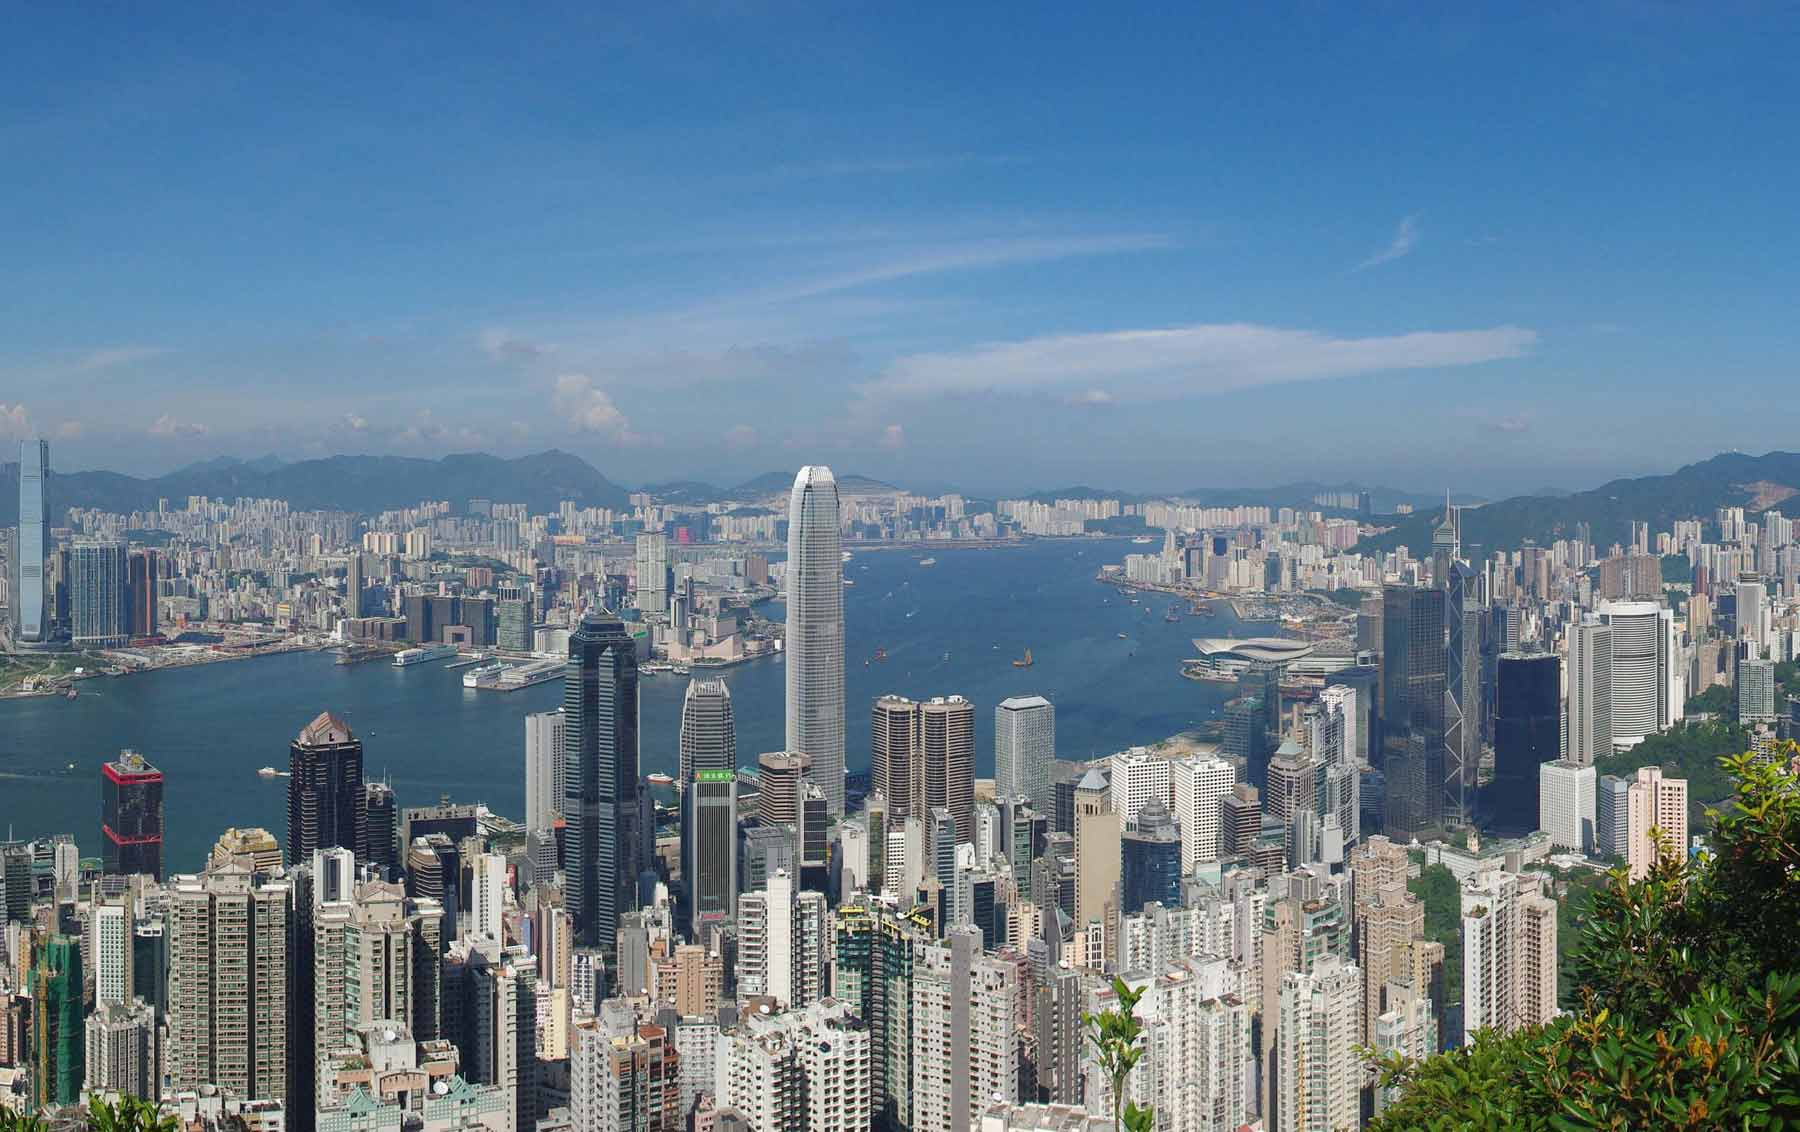 Hong Kong: The Road to Urban Transformation